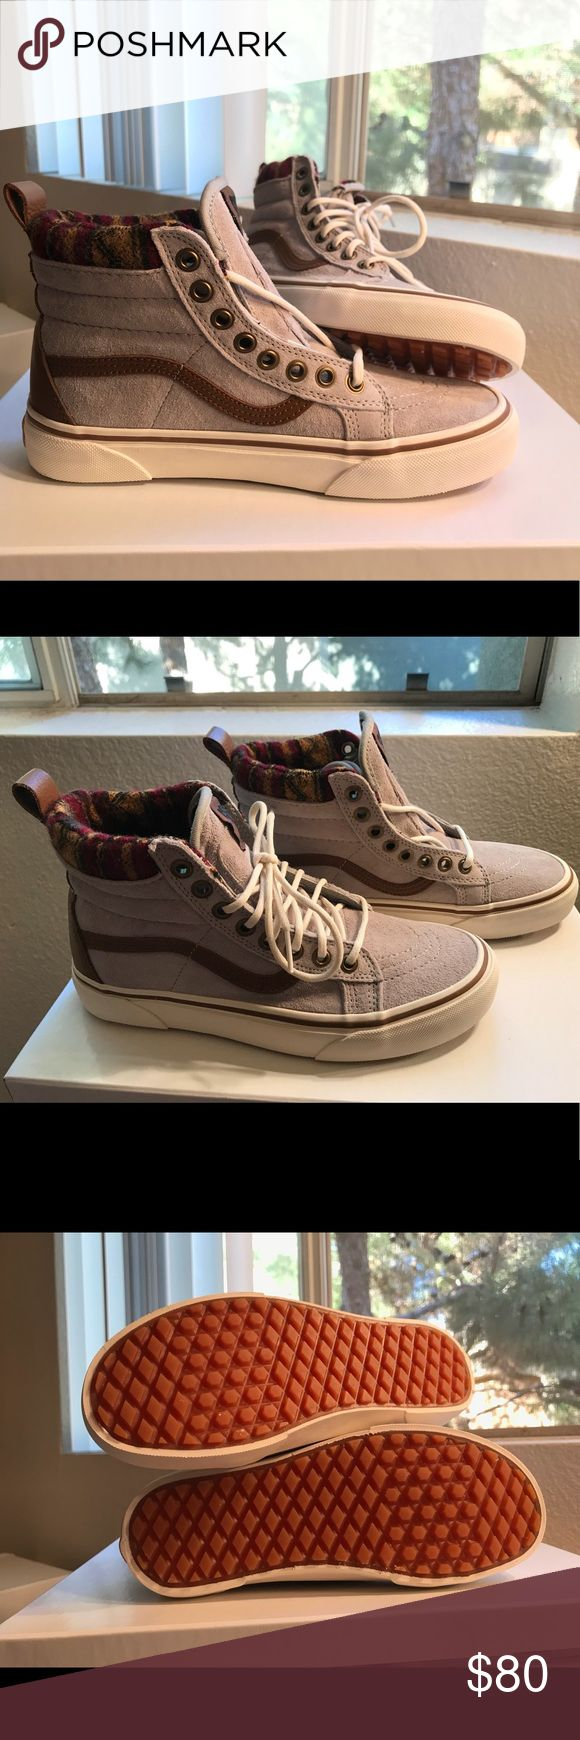 Vans SK8-HI MTE geo tan Brand new, never worn! Vans MTE's. SOLD OUT ONLINE! Size 5.5 men's. 7.0 ladies. Come with scotchgard 3M protection. Does not come with box, but all stickers still attached to interior. No defects to report.  Open to offers. Vans Shoes Sneakers